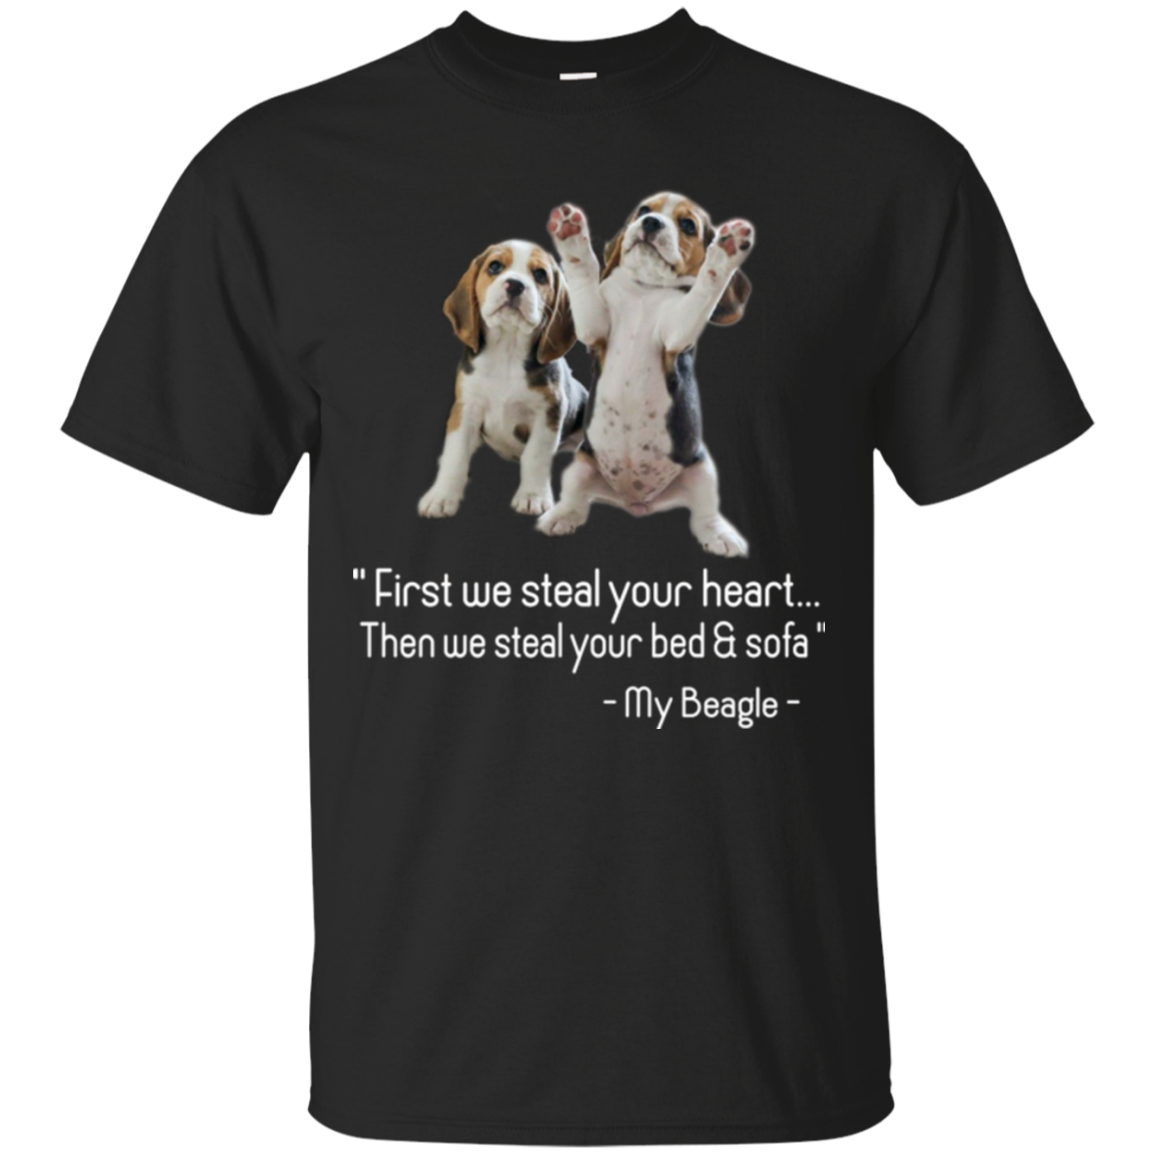 Beagle Shirts Then We Steal Your Bed & Sofa